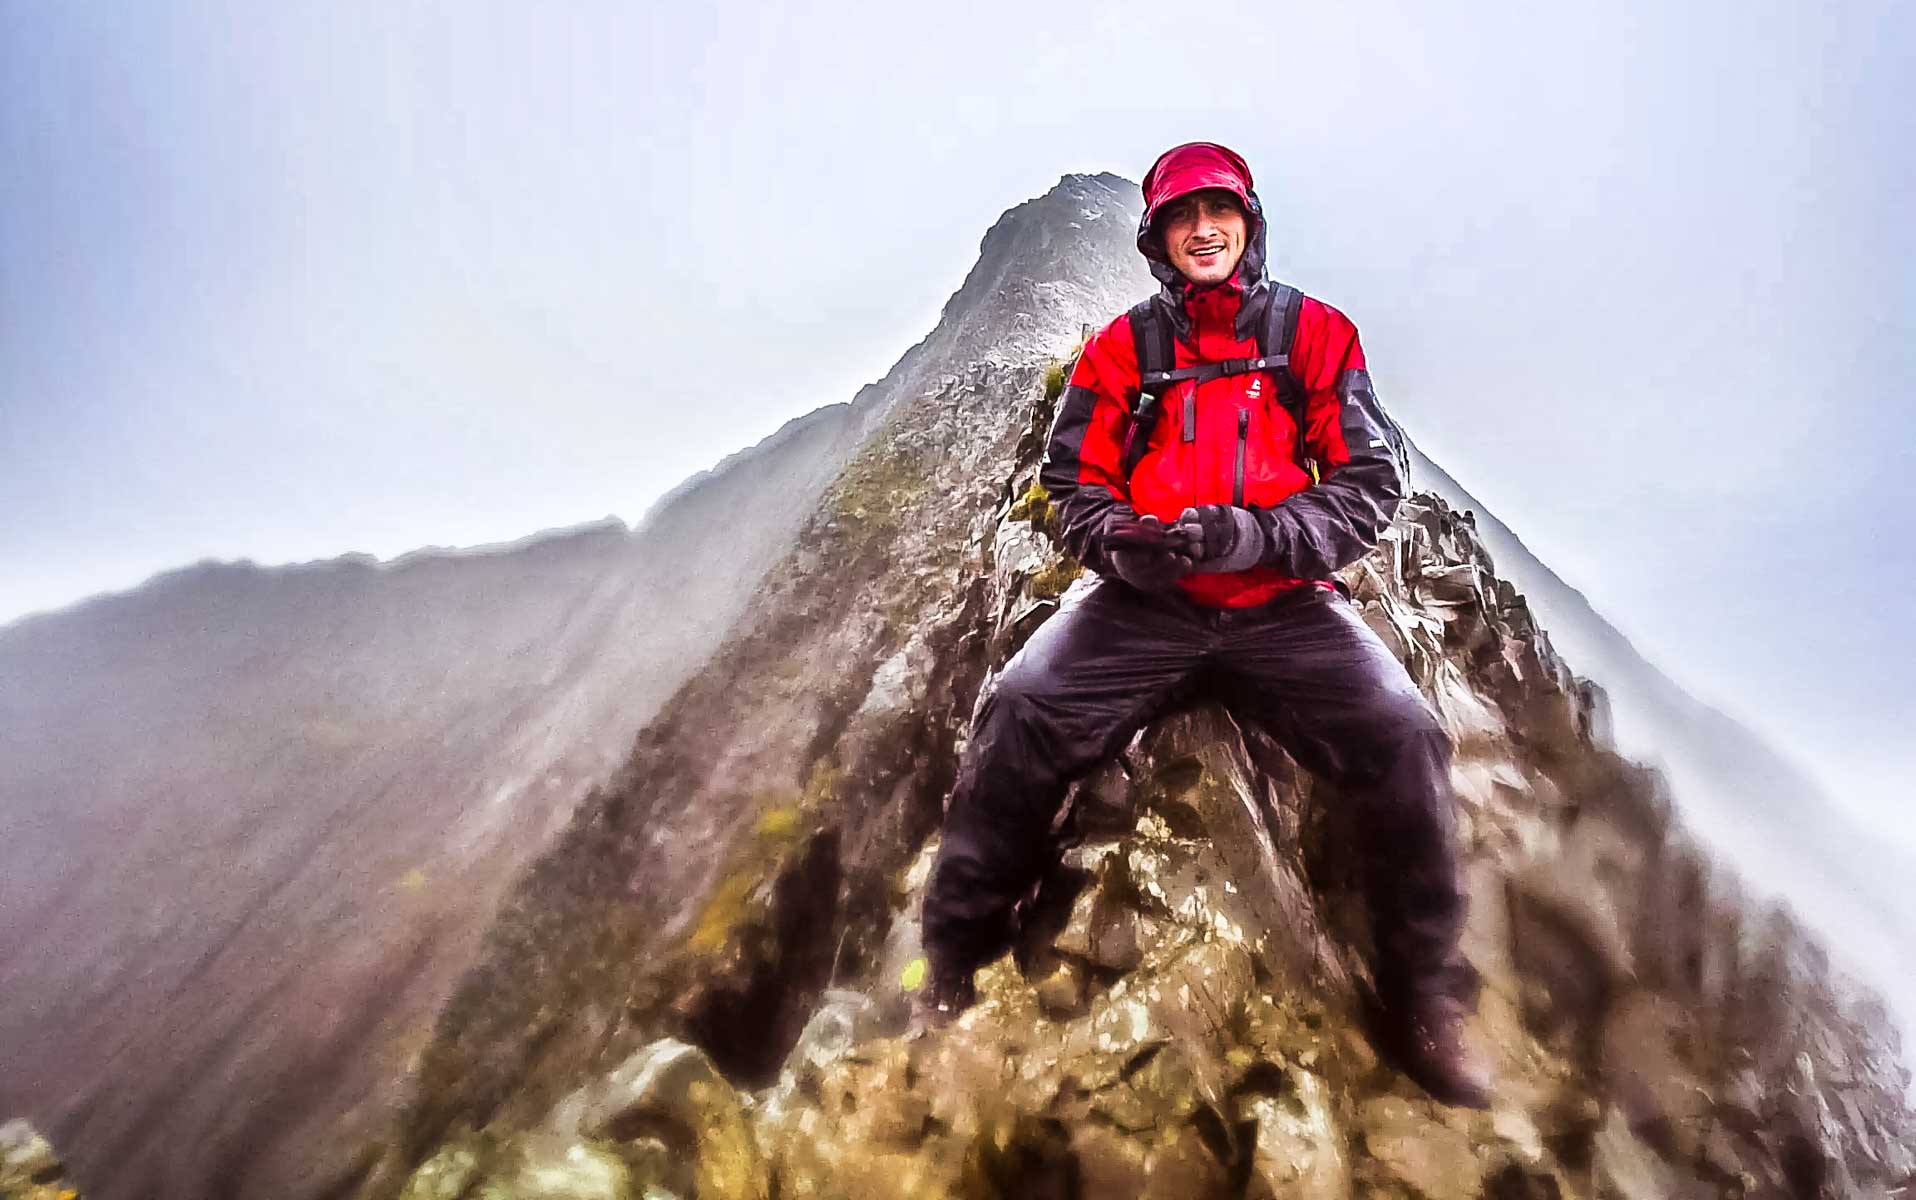 20363540e52440134b91a340231efd1e35a67693efaf32fcbf520700 Crib Goch - One of Britain's Greatest Ridges